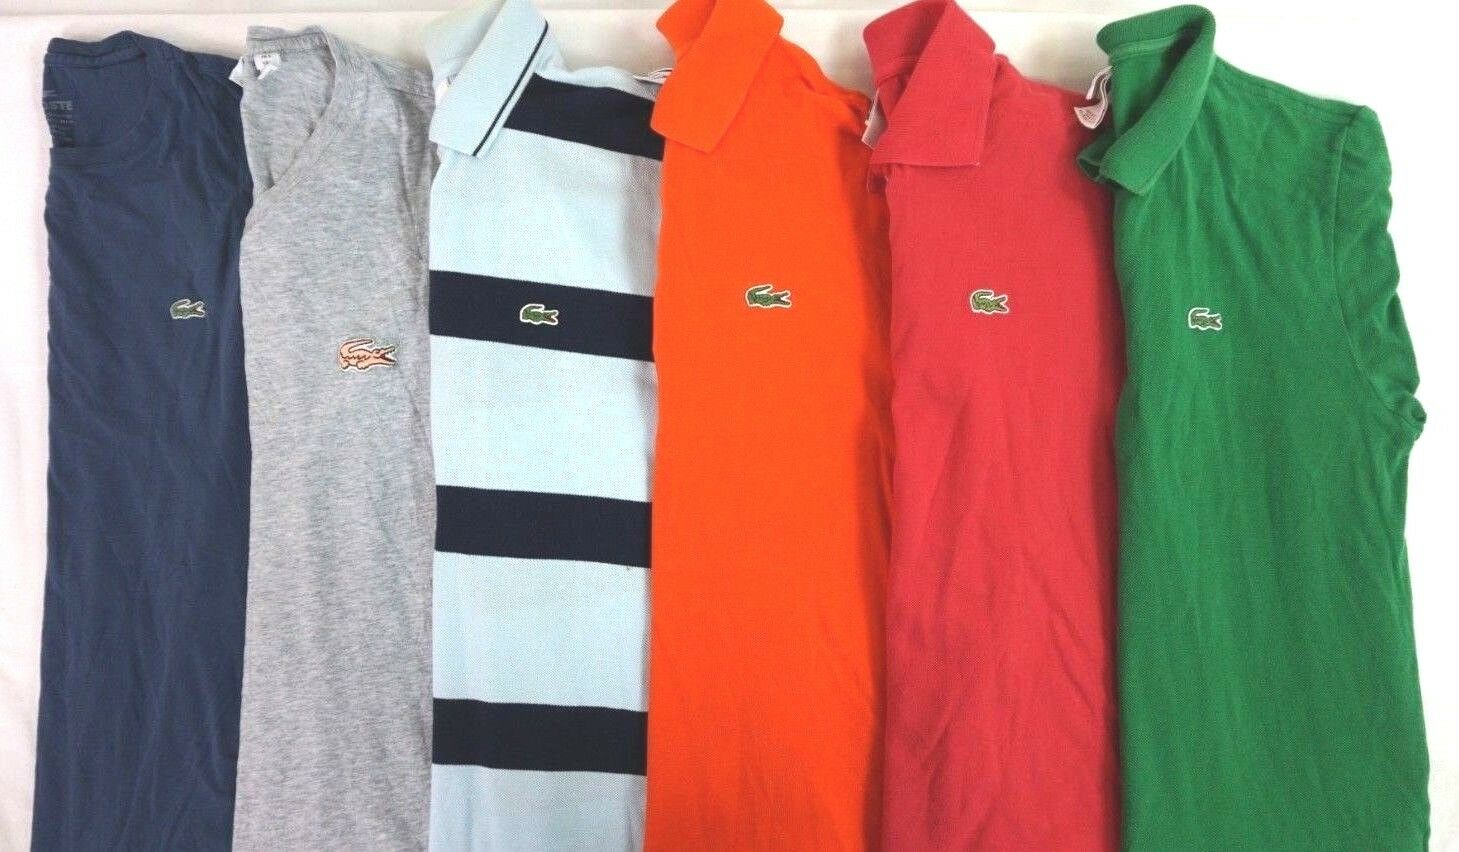 LACOSTE Lot of 6 Men's 100% Cotton Short Sleeve Polo   Tee Shirts Size 5   US L